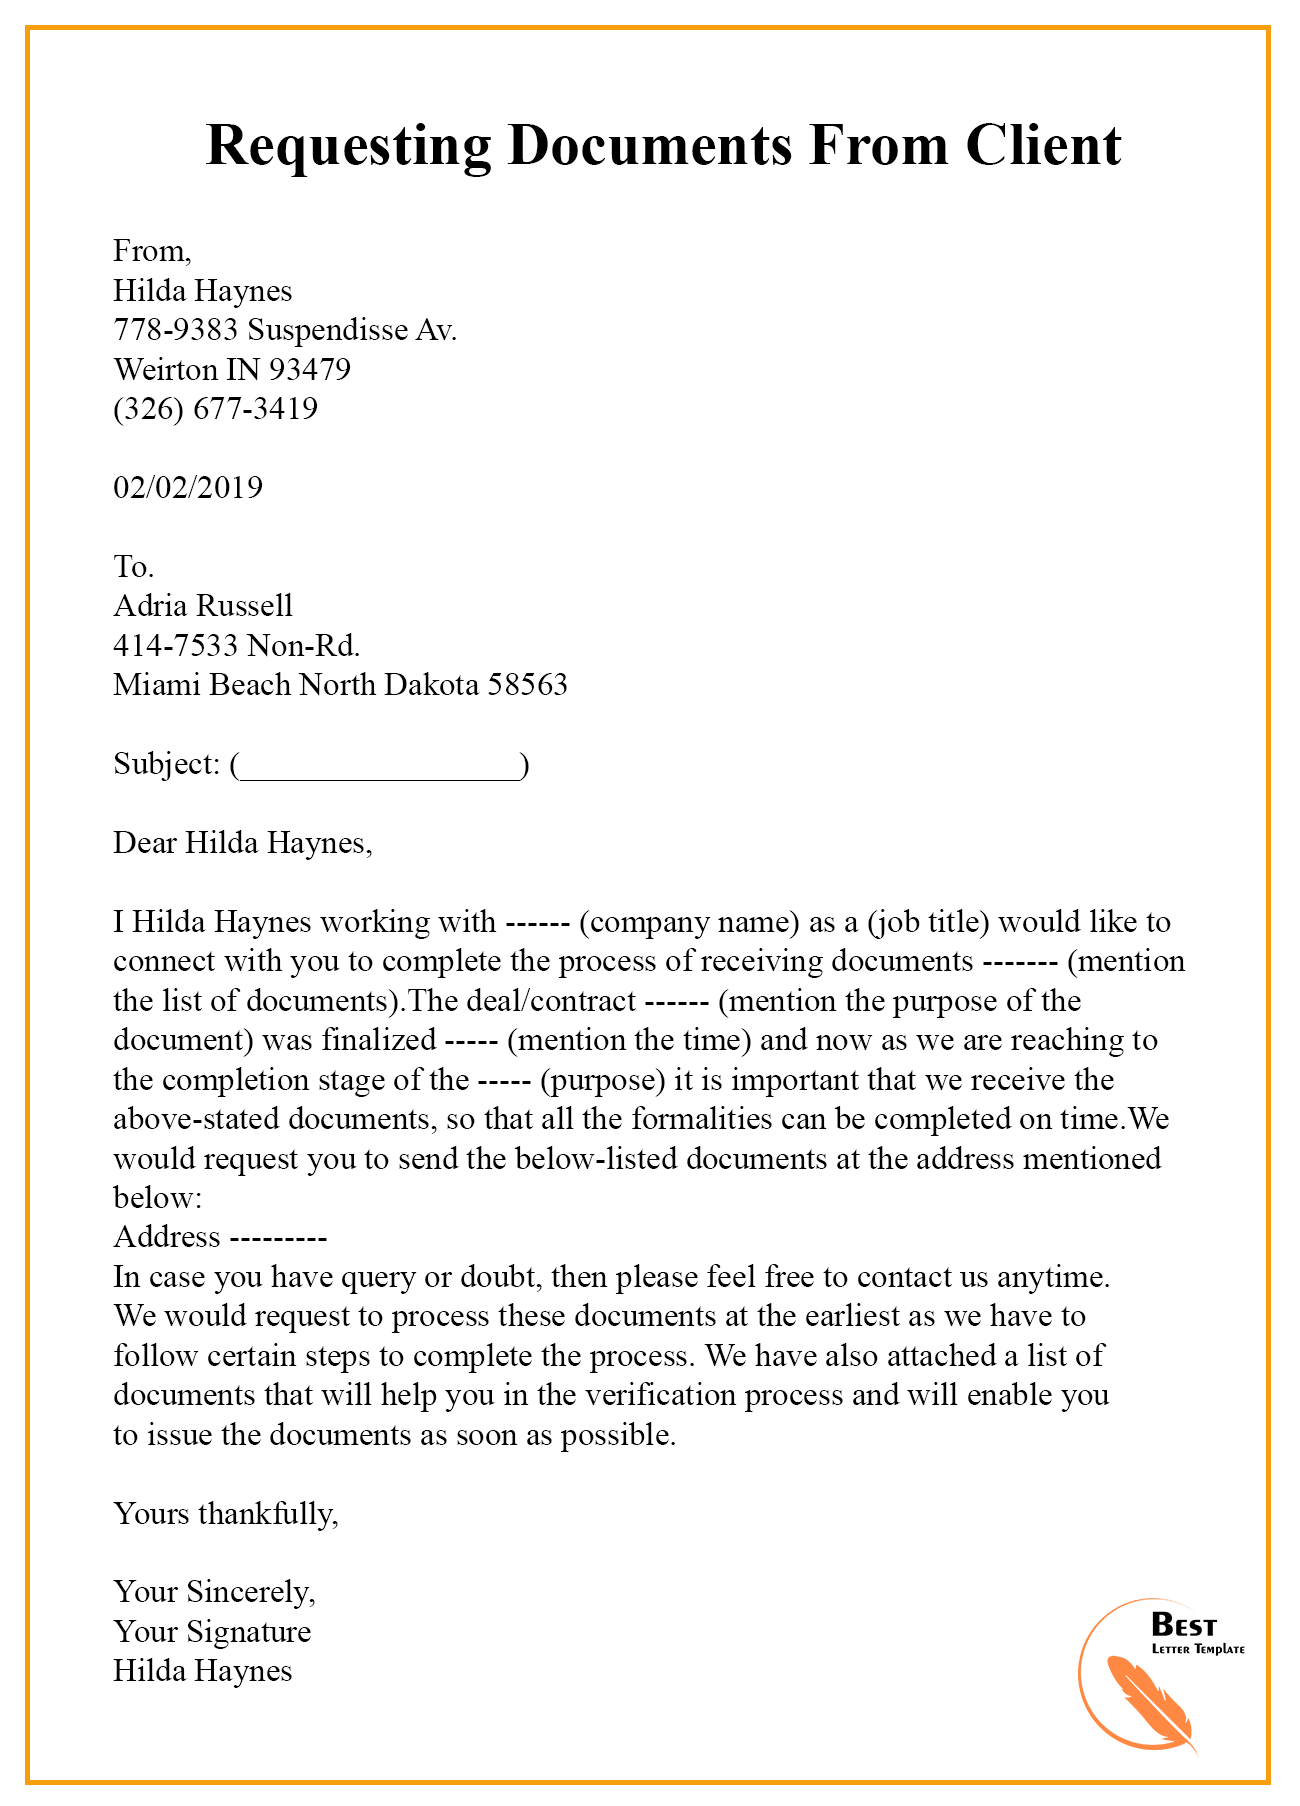 REQUESTING-DOENTS-FROM-CLIENT Sample Appeal Letter Template For Business Name on